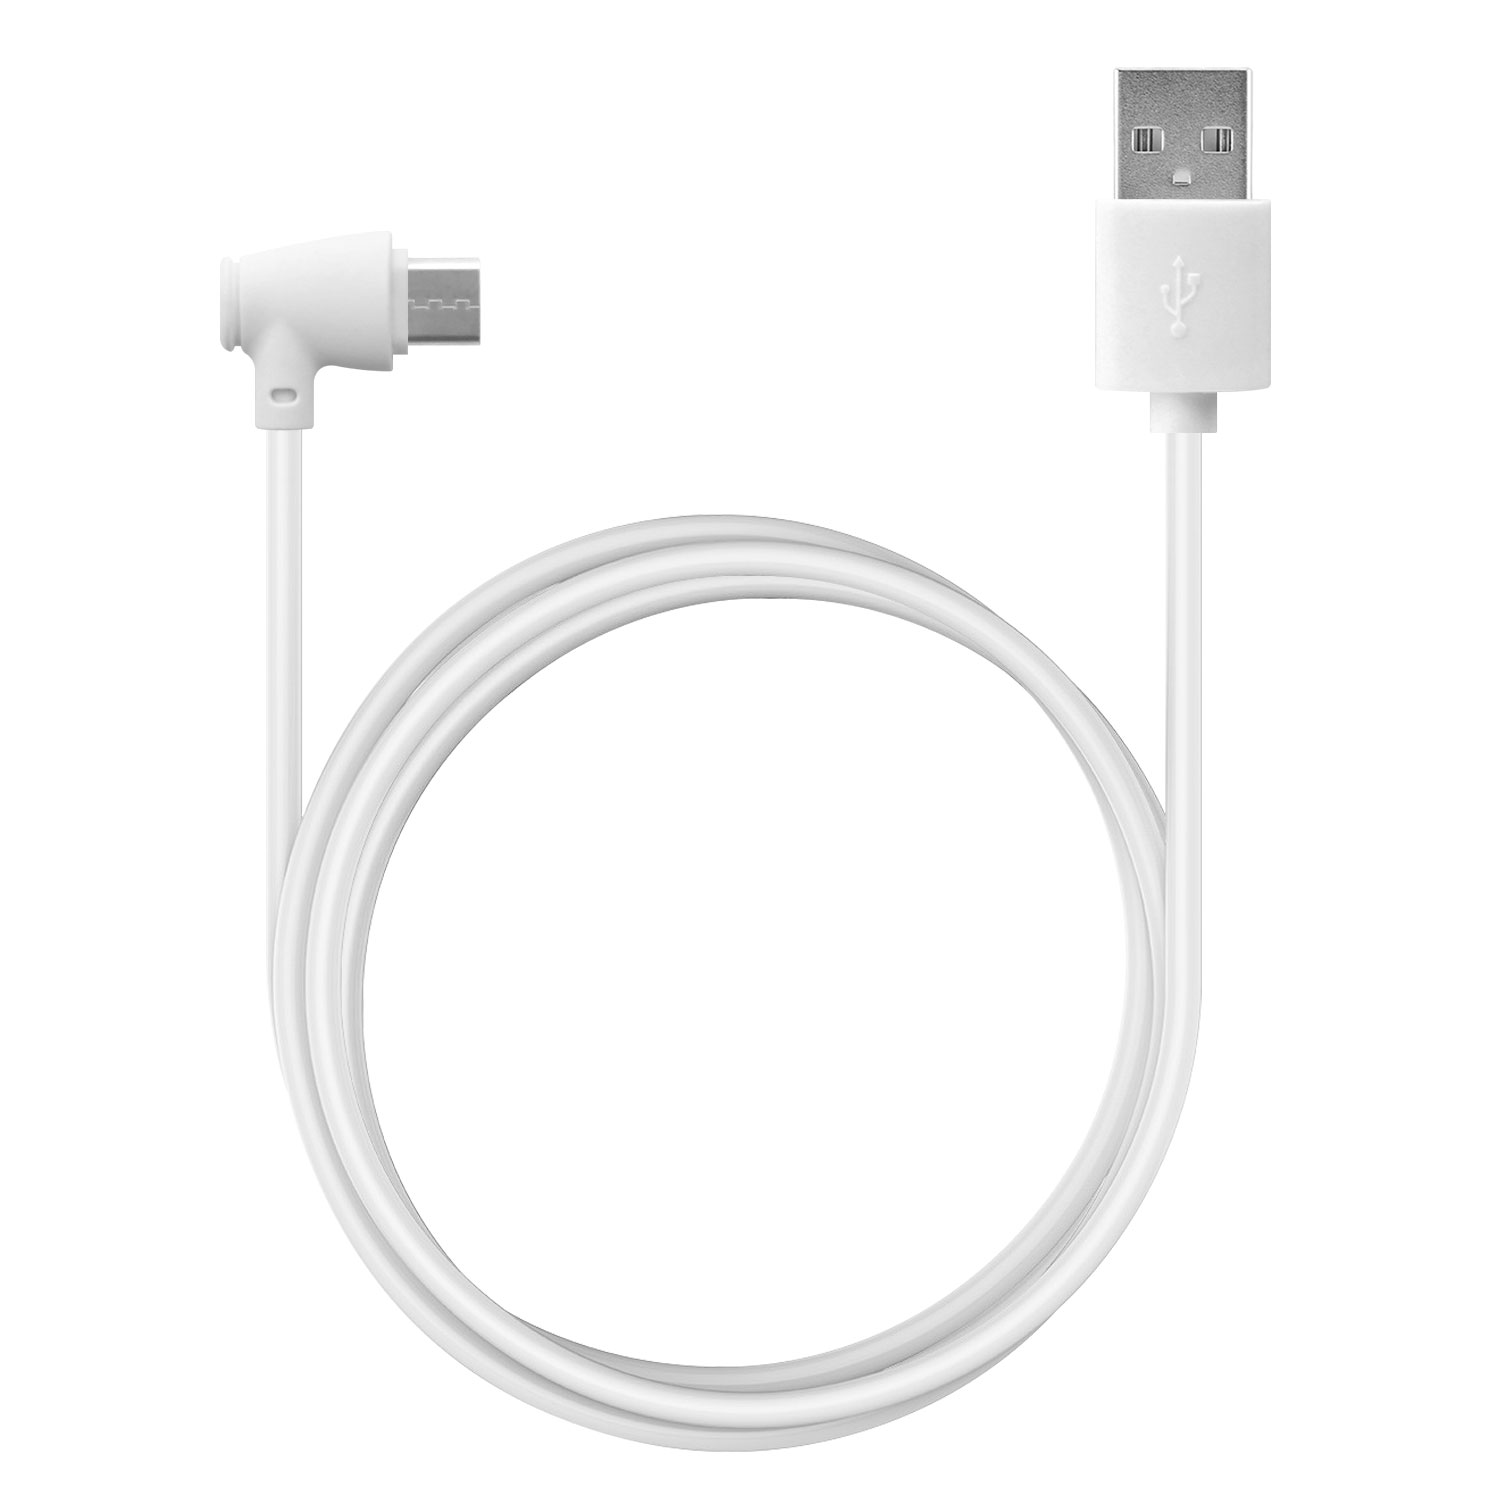 Google Pixel 3 XL USB Type-C To USB Type-A Data Charging Cable White 3.3ft Angled